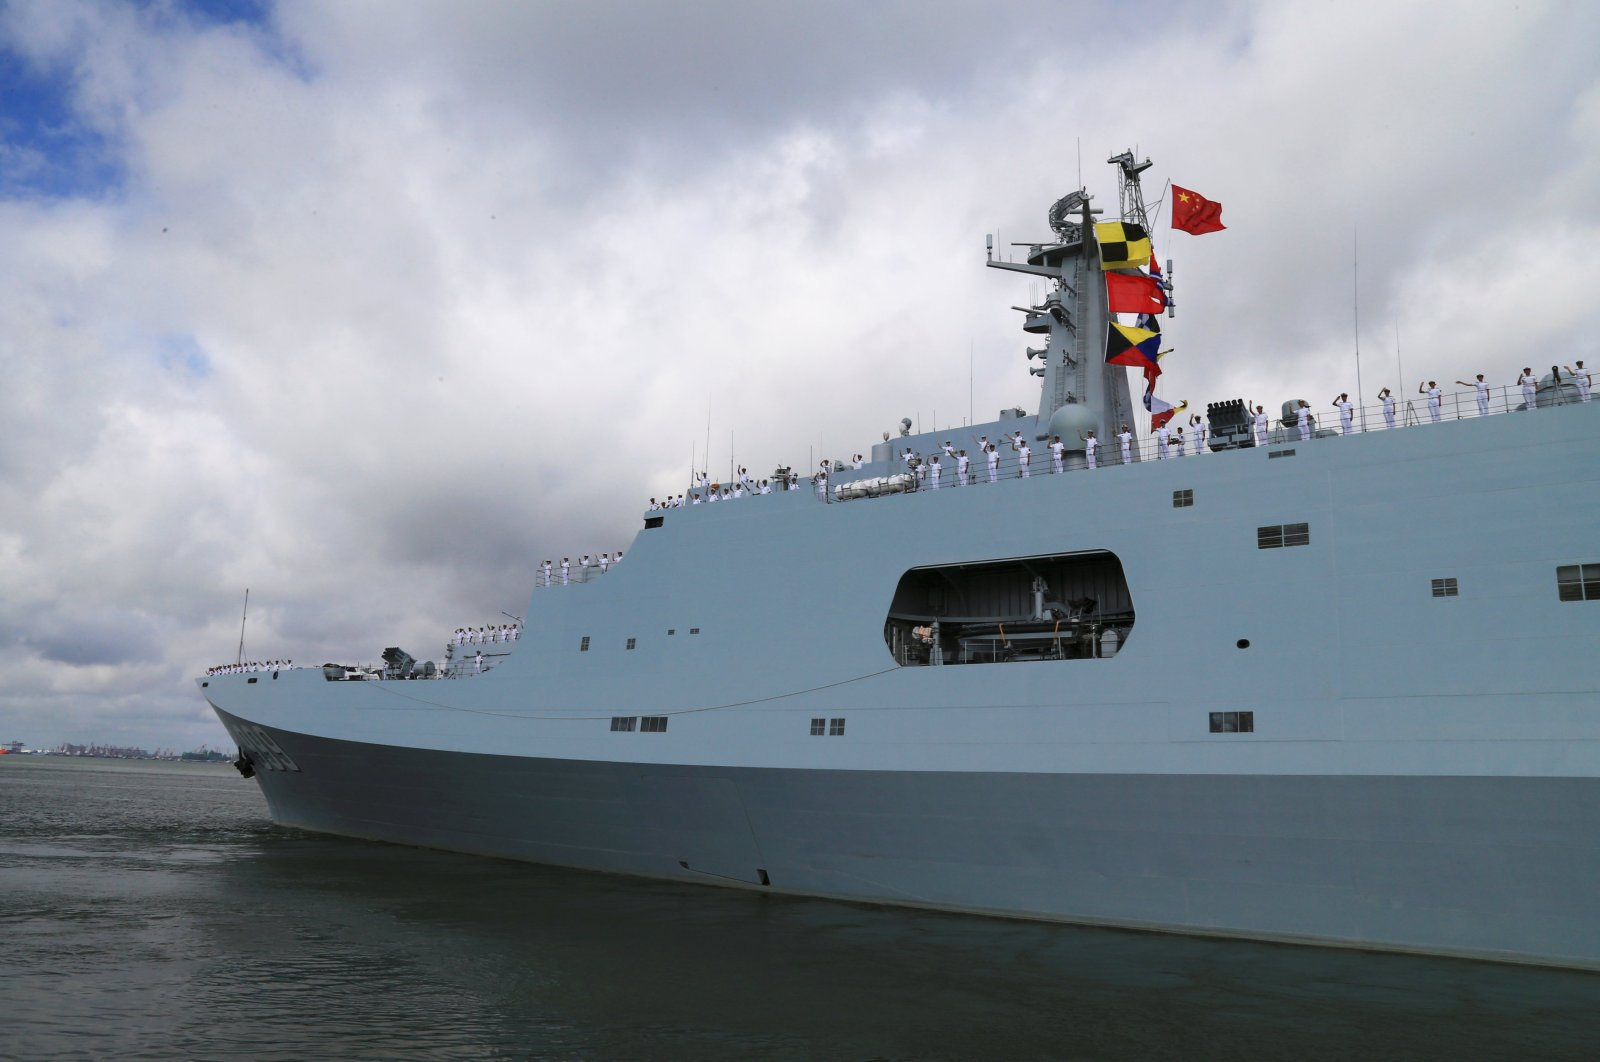 Soldiers of China's People's Liberation Army (PLA) salute from a ship sailing off from a military port in Zhanjiang, Guangdong province, China, July 11, 2017. (Reuters Photo)